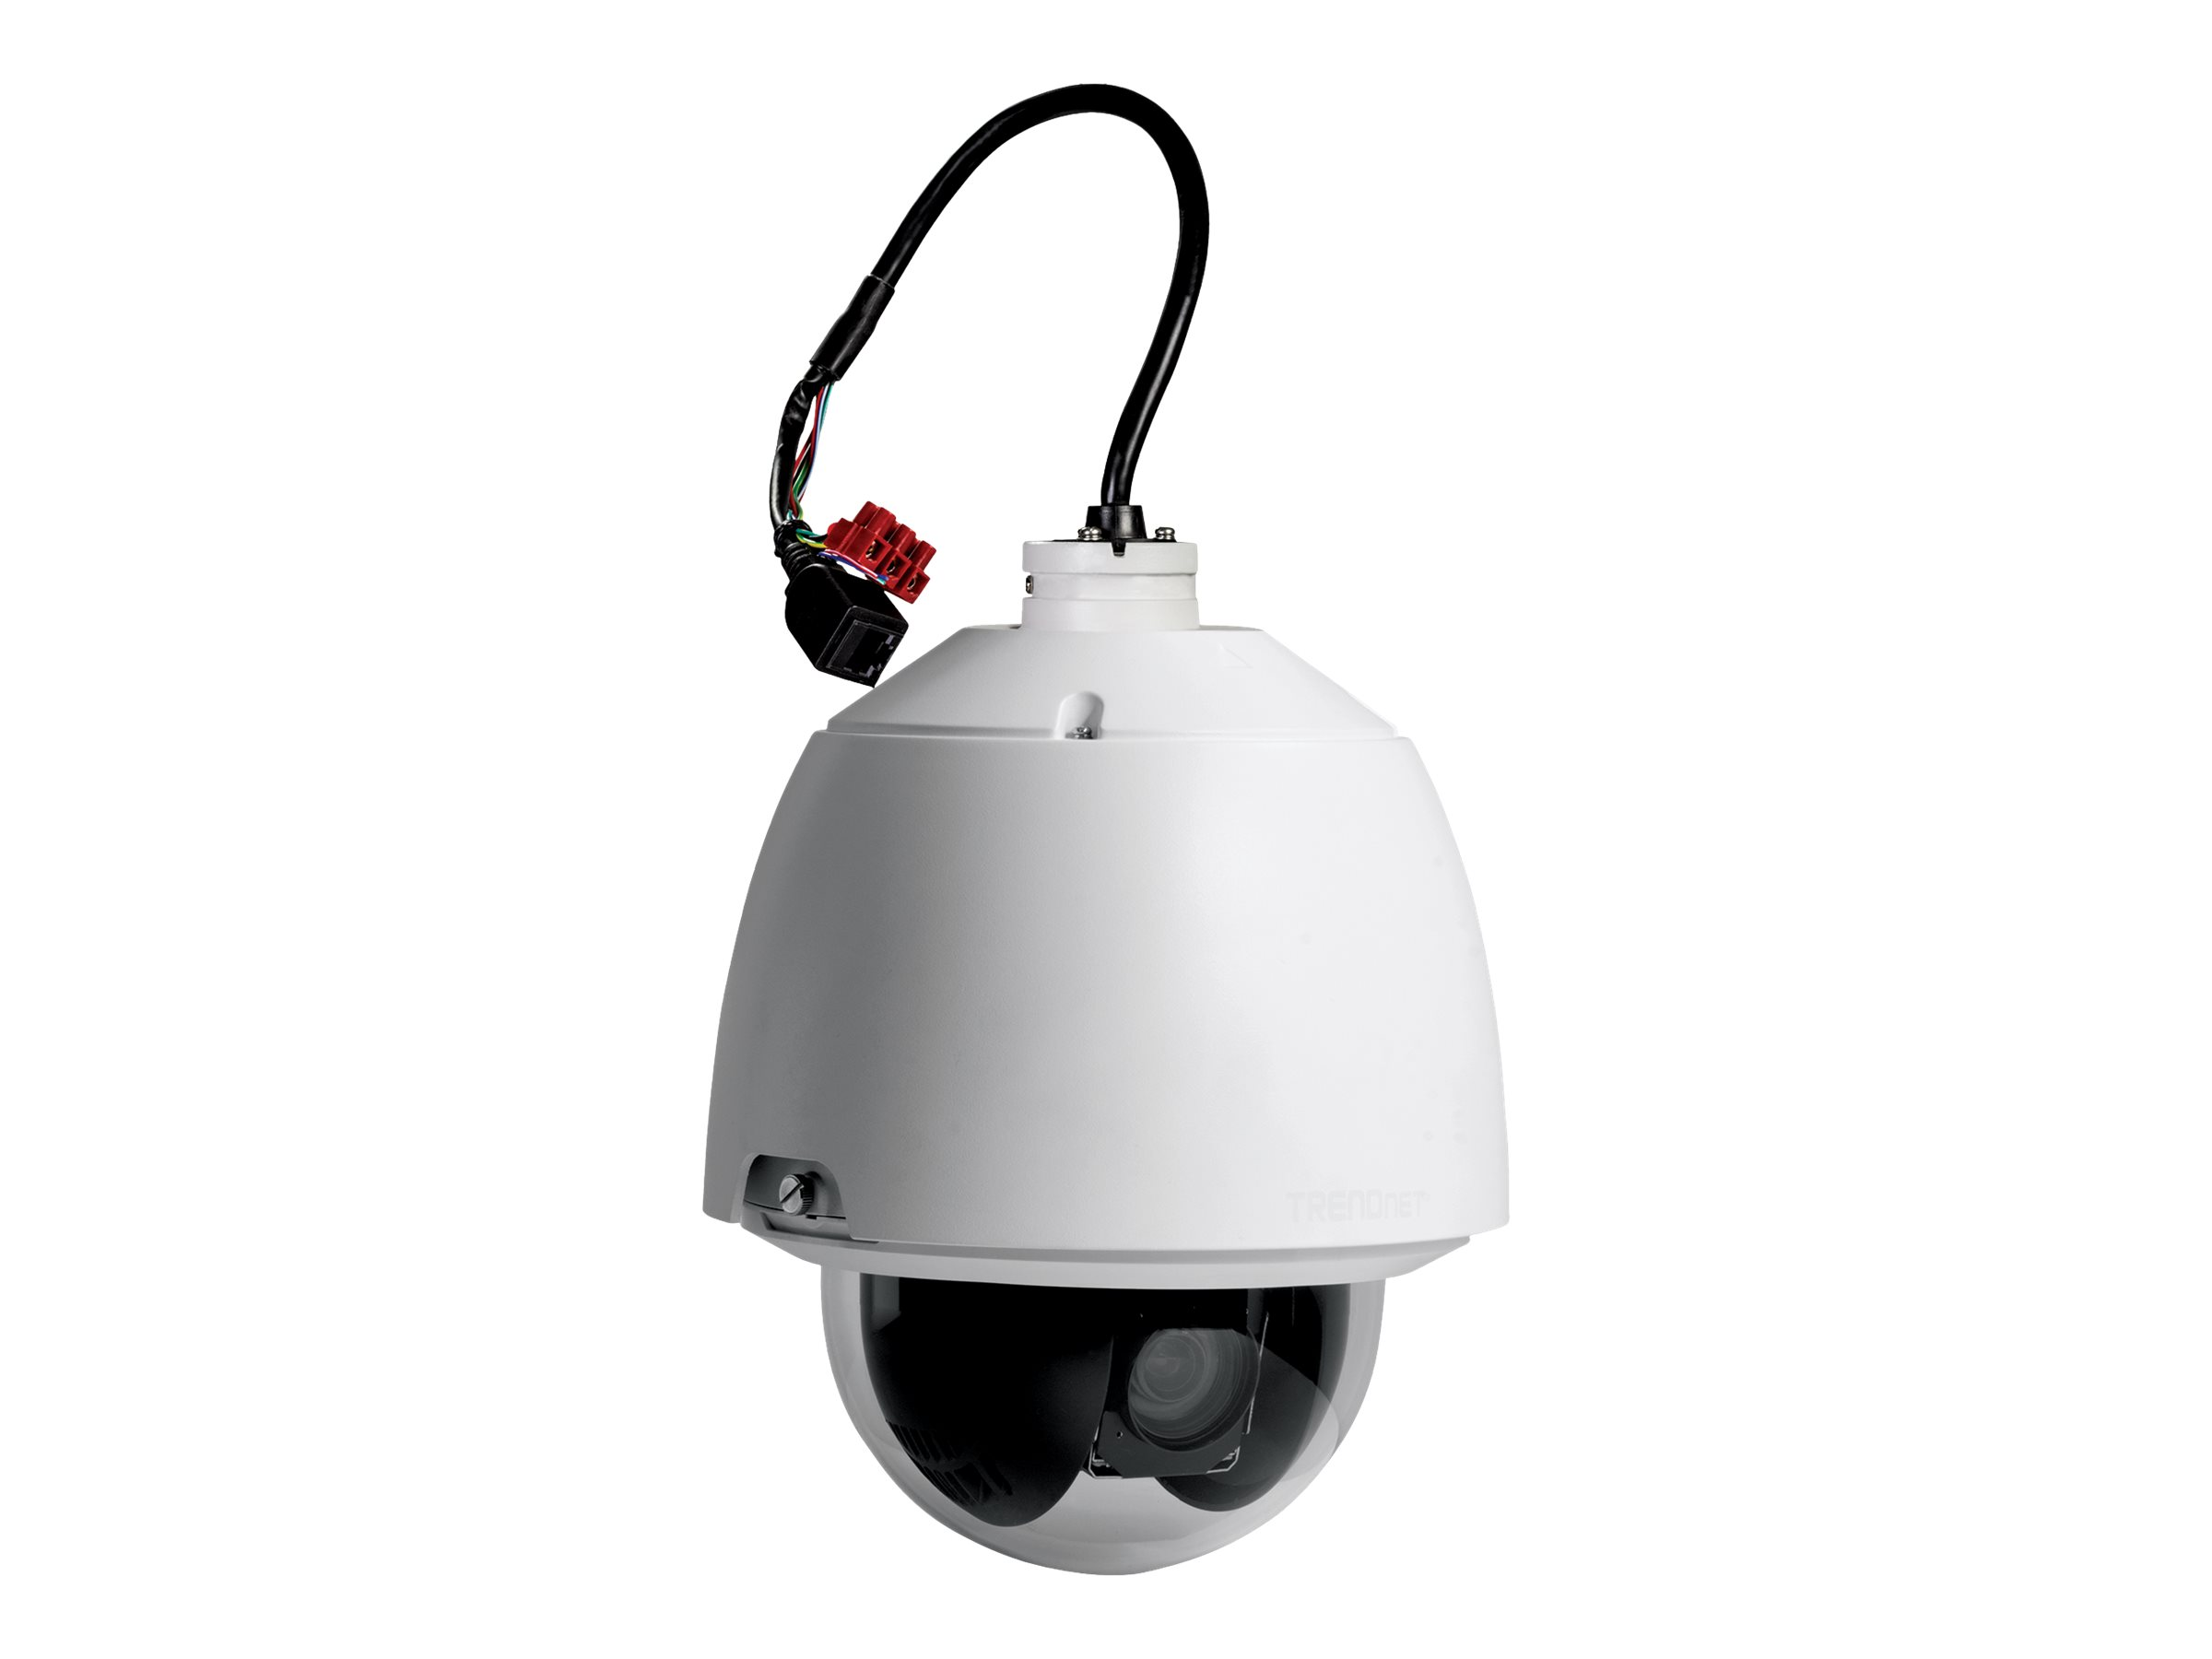 TRENDnet TV TV-IP450P Outdoor 1.3 MP HD PoE+ Speed Dome Network Camera - network surveillance camera